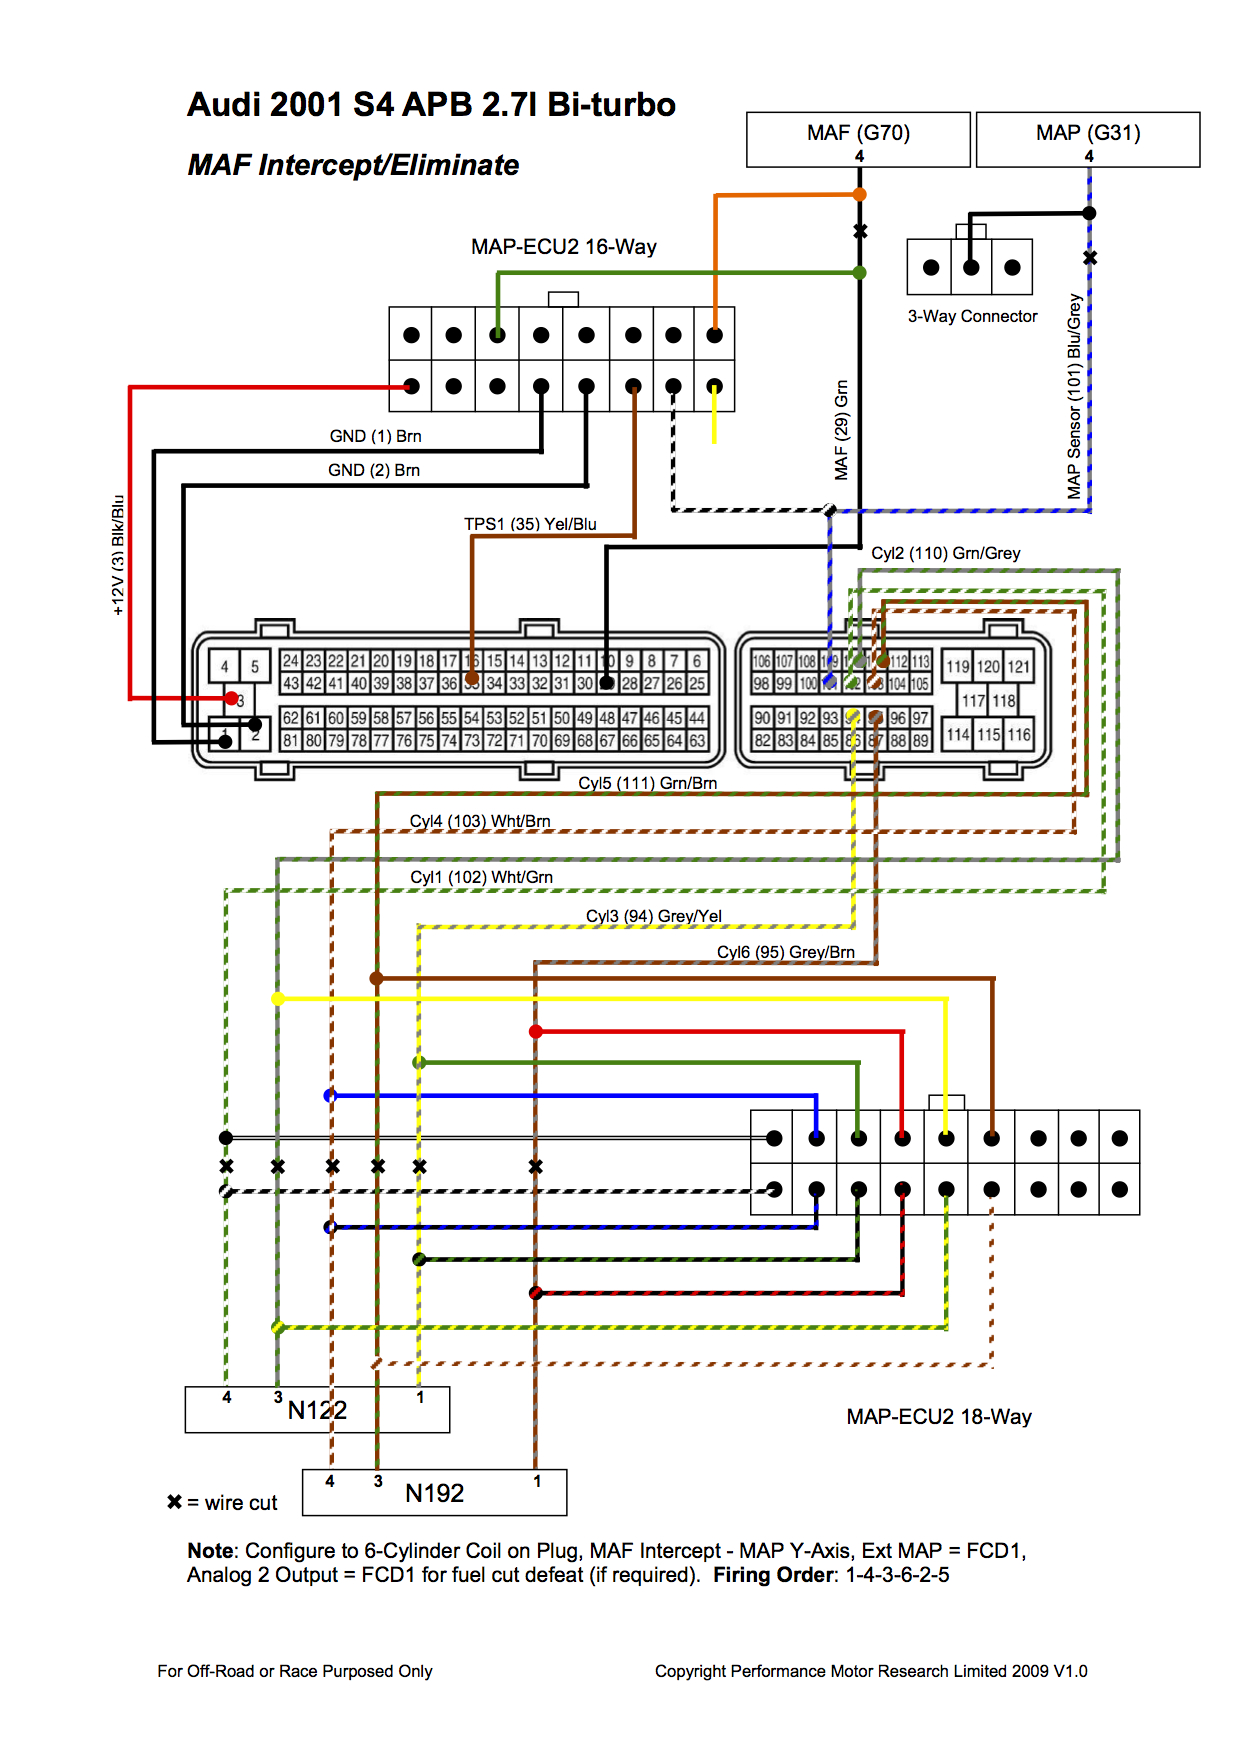 Audi S4 20011 ecu wiring diagram paccar ecu wiring diagram \u2022 wiring diagrams j vw polo 2010 wiring diagram pdf at bayanpartner.co